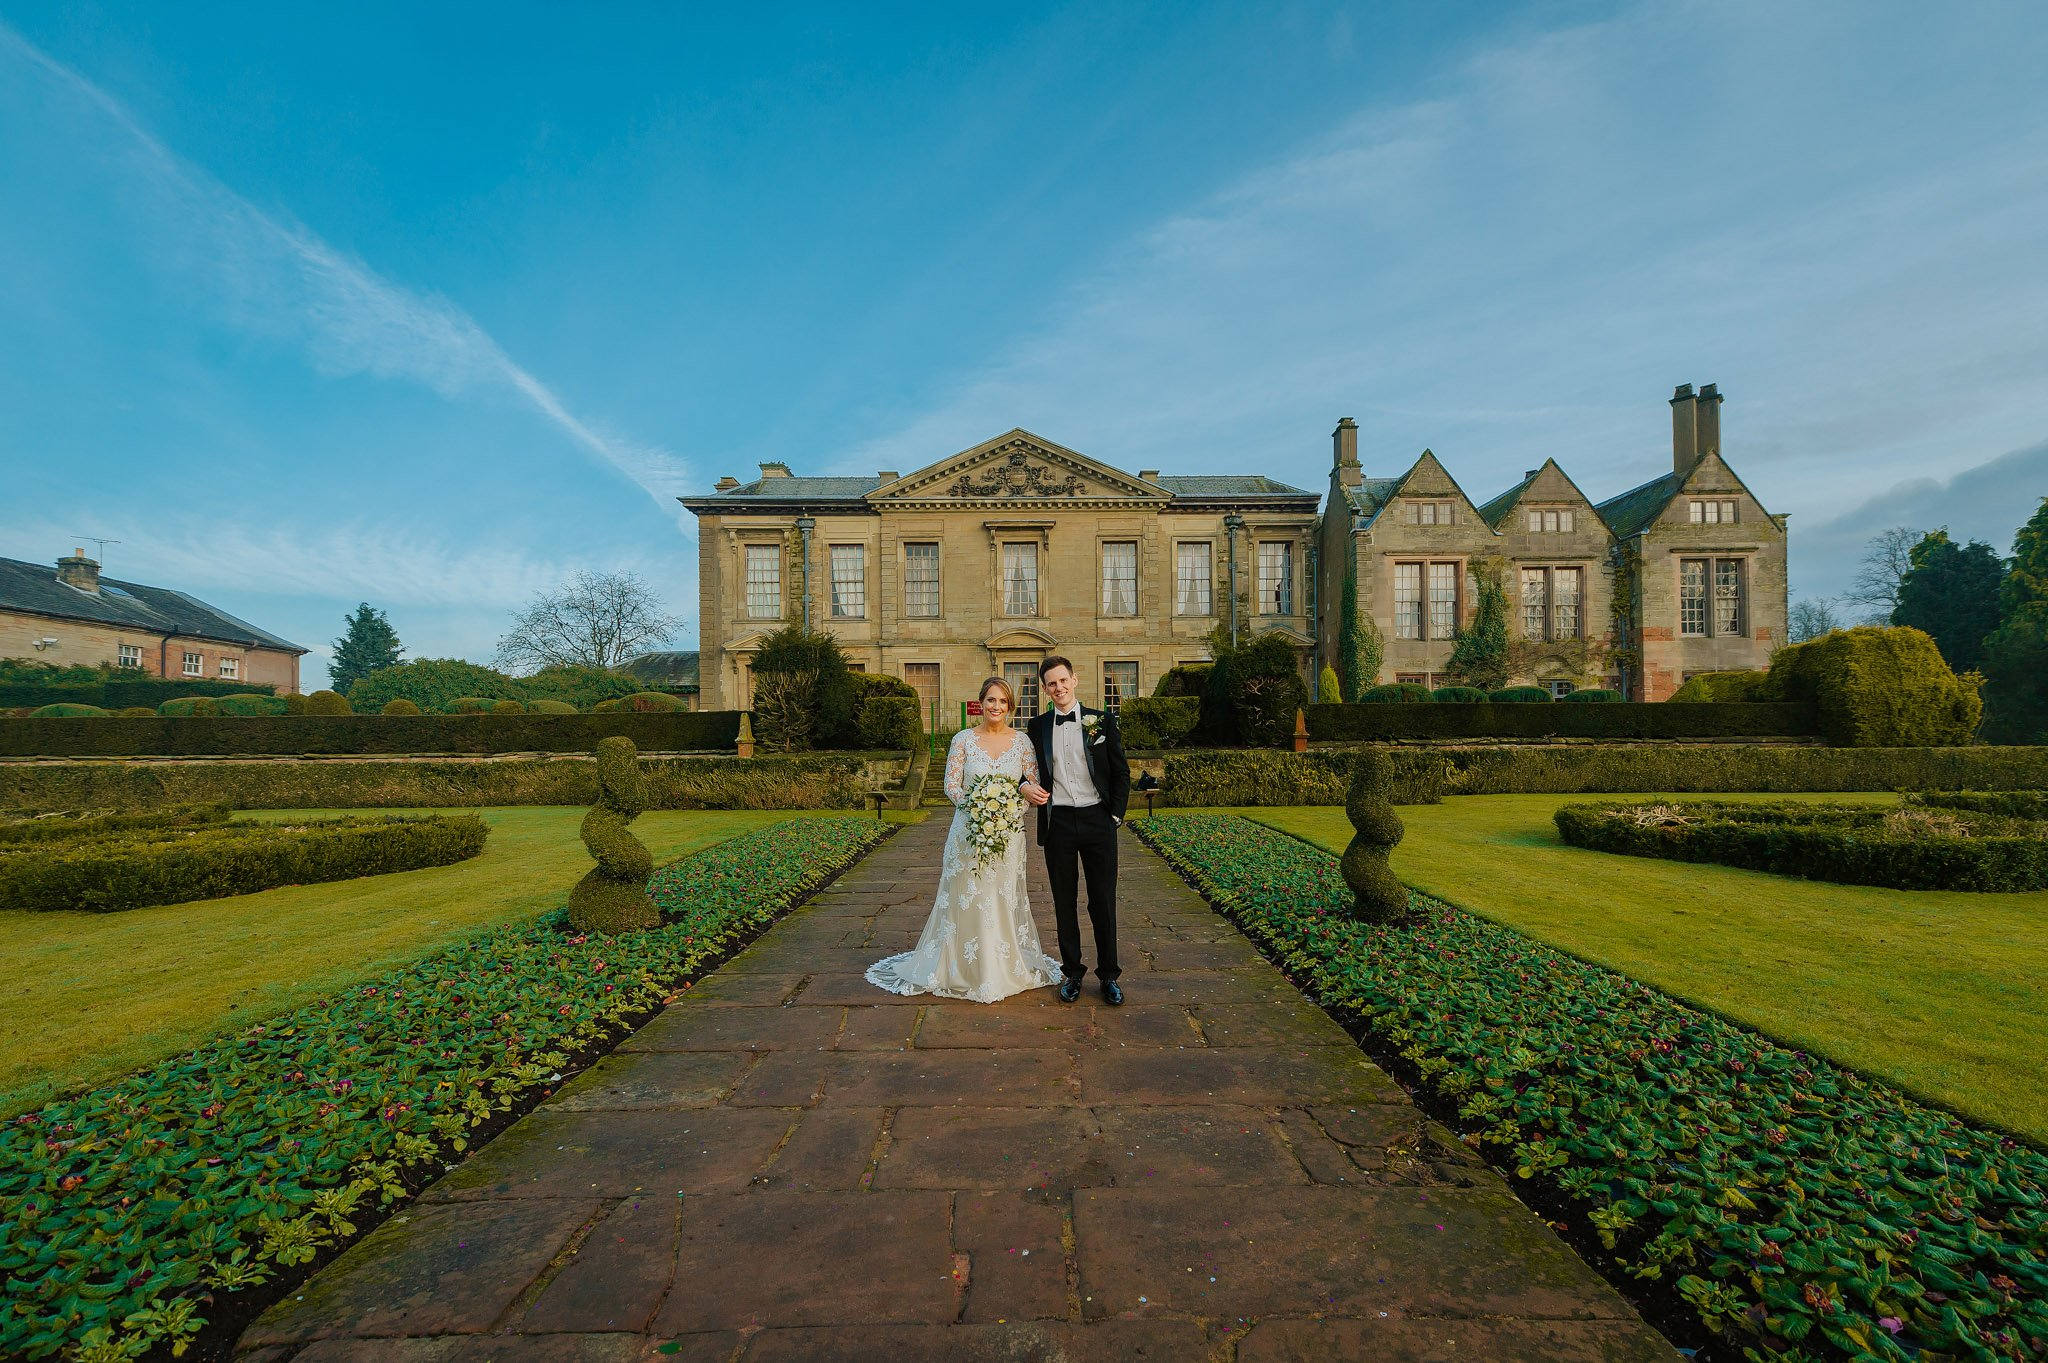 Coombe Abbey wedding in Coventry, Warwickshire - Sam + Matt 47